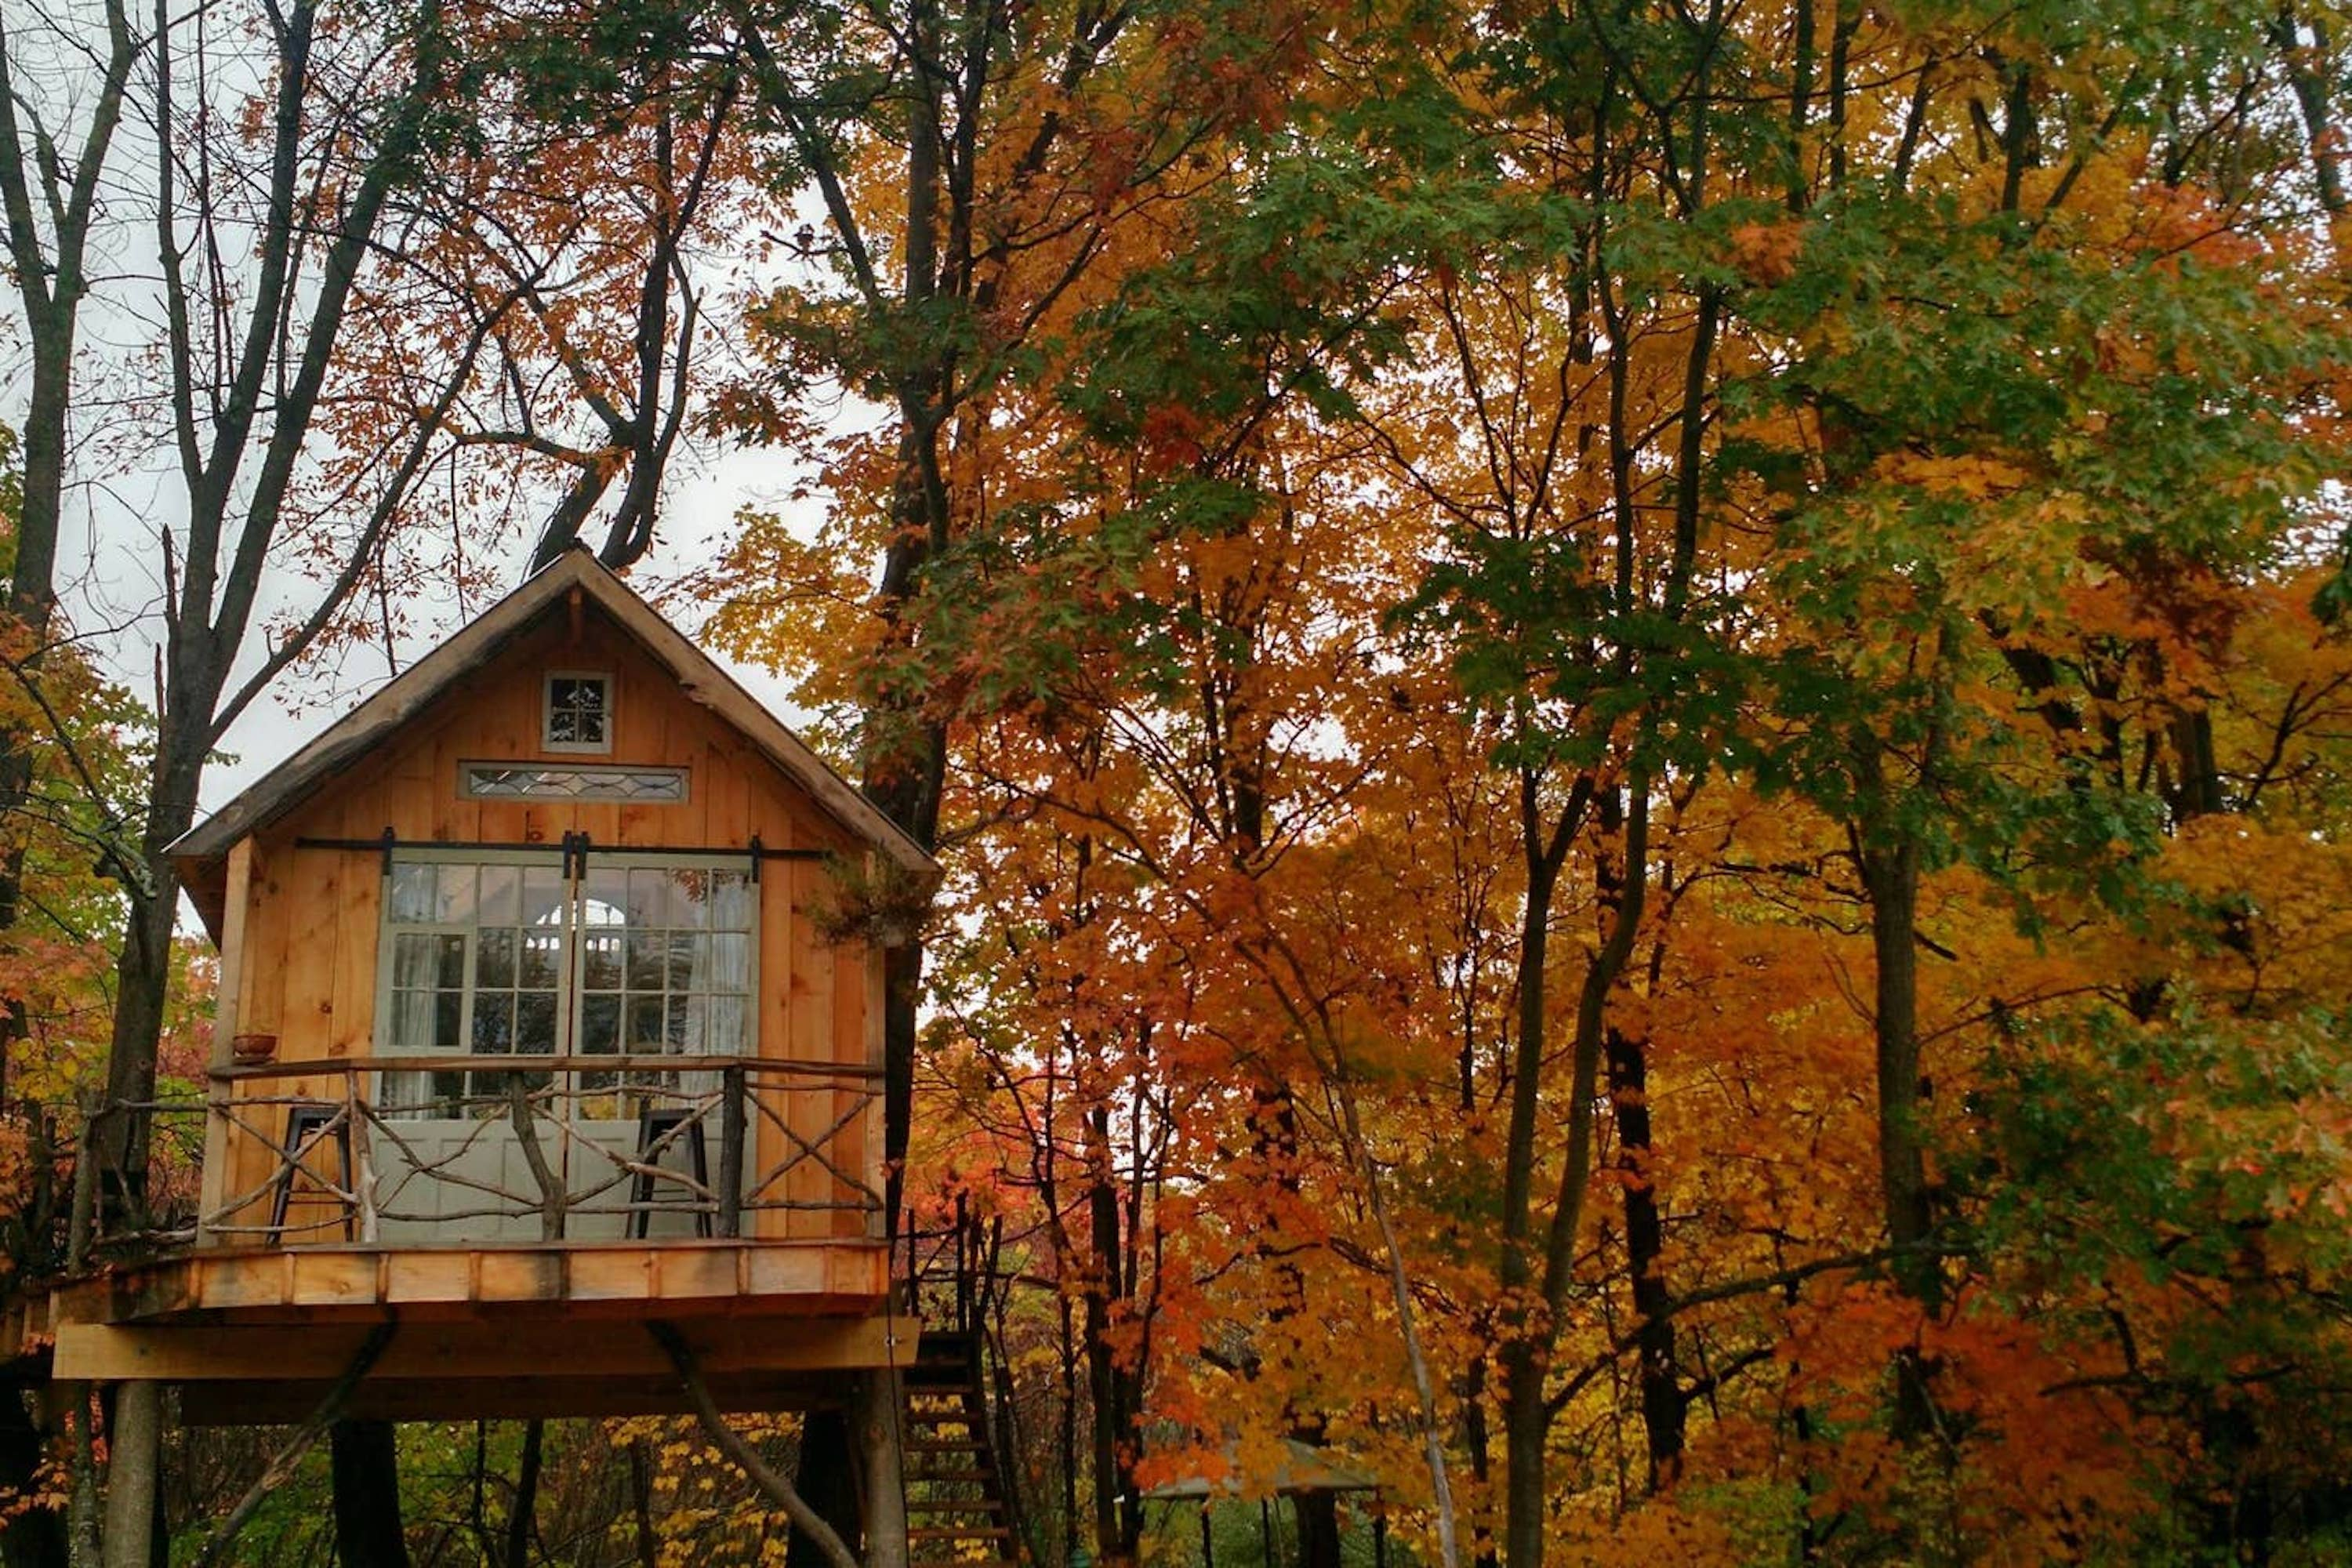 The Best Airbnbs To Book For A Perfect Fall Foliage Getaway